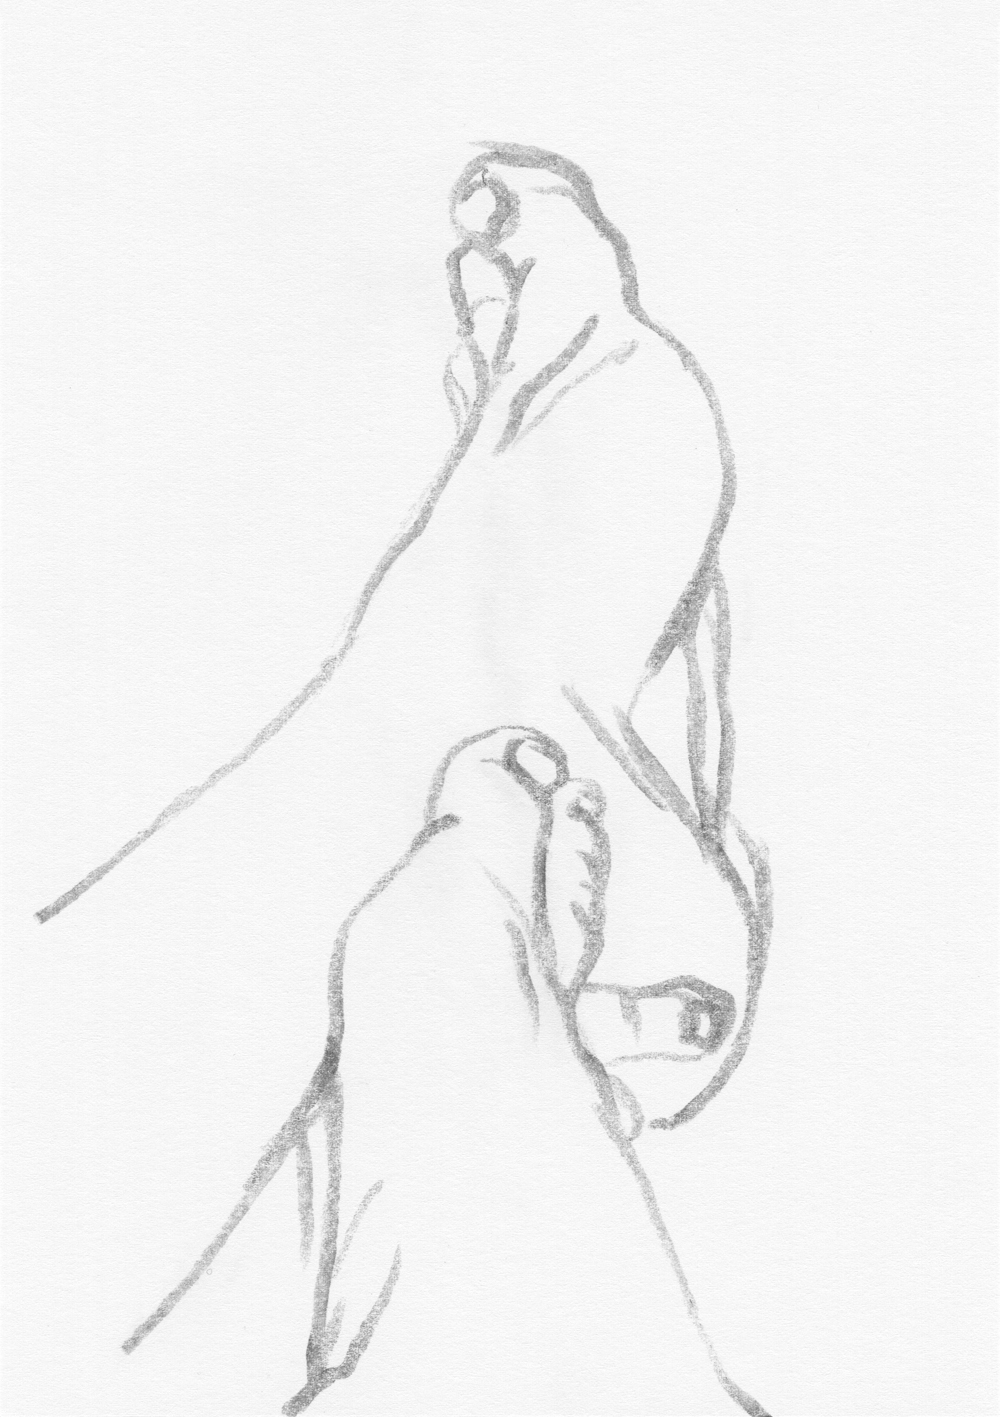 Sketches - Pencil Drawings - Figure Drawing : The sketch of my feet IV, pencil drawing, 2017.